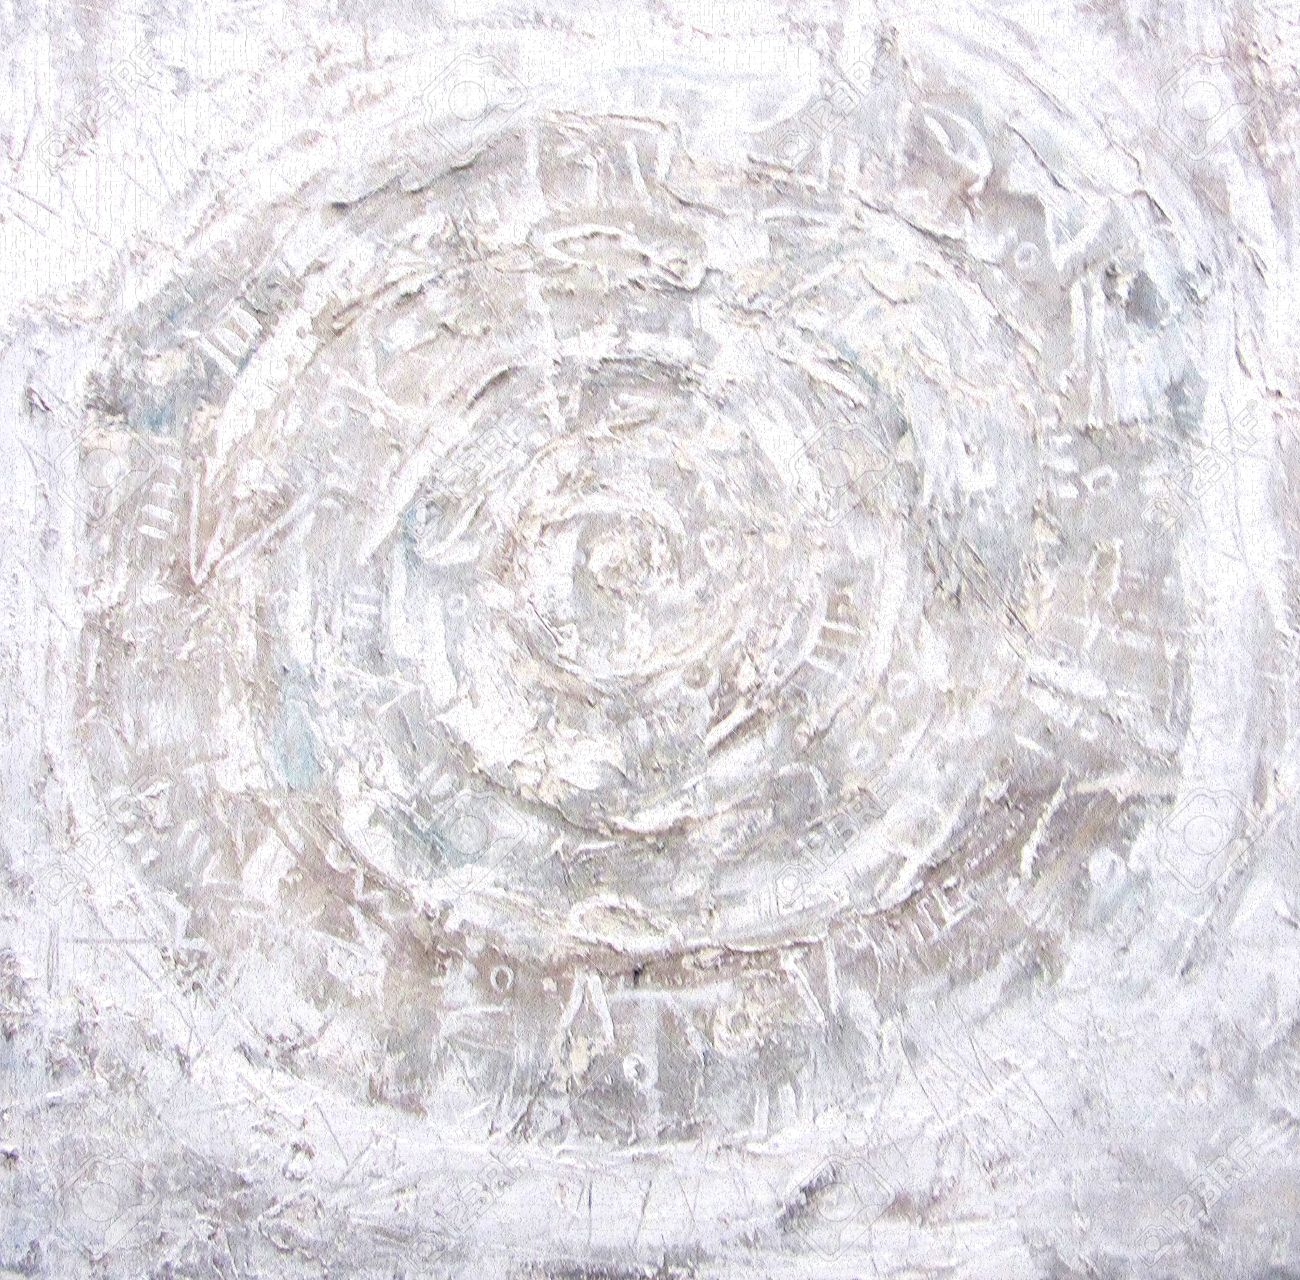 Acrylic Painting Fiery Circles On Textured Background Ragged